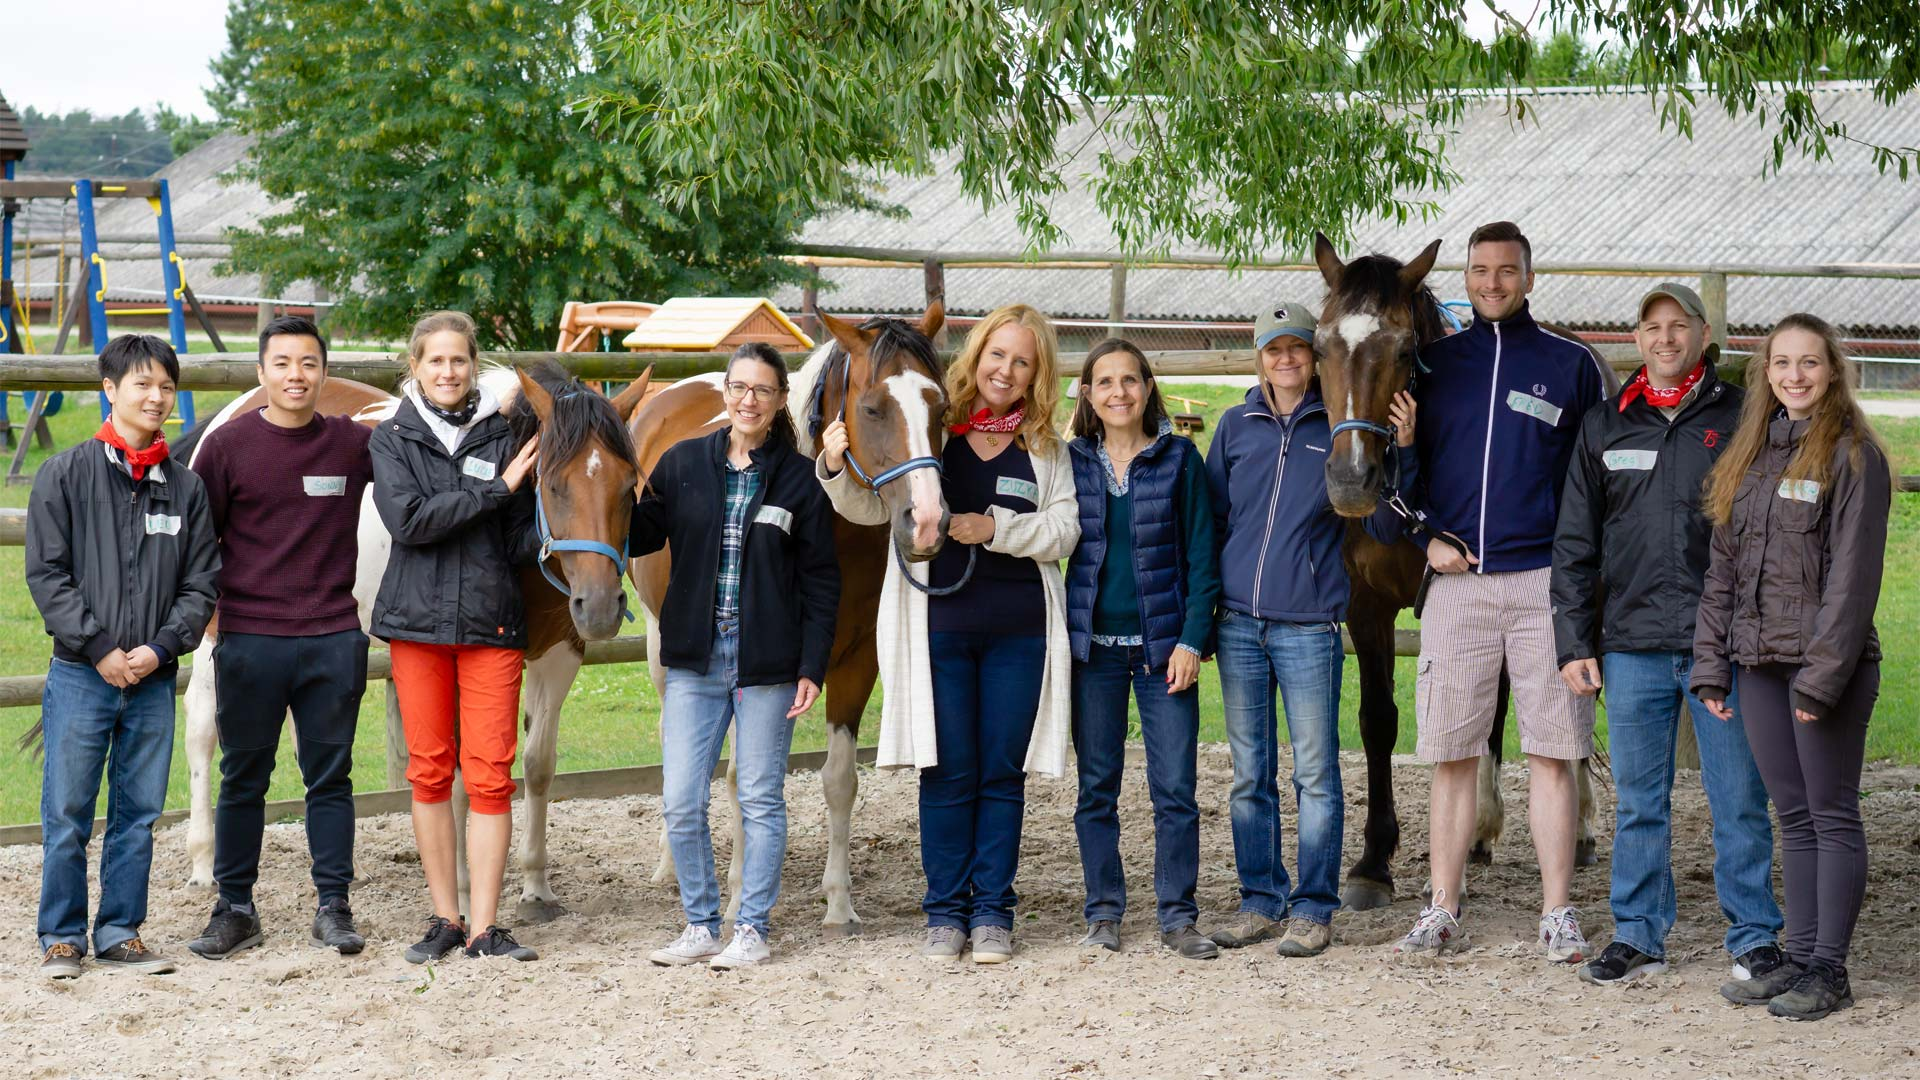 Participants from the June 23rd Coaching with Horses Workshop